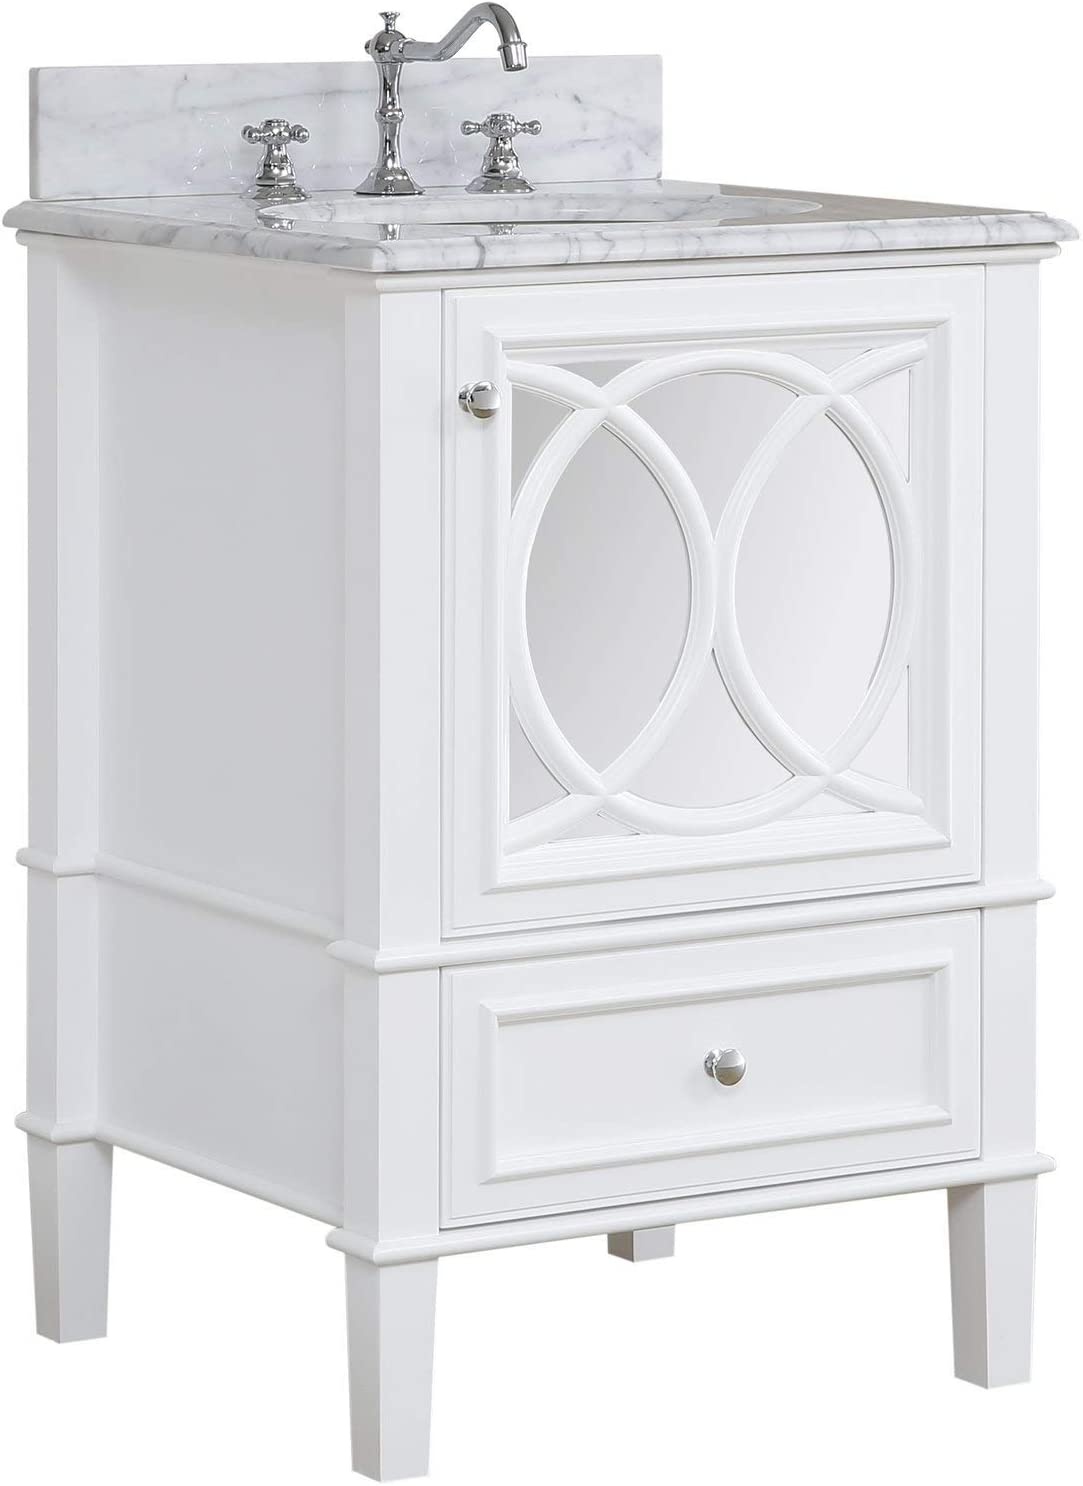 Amazon Com Olivia 24 Inch Bathroom Vanity Carrara White Includes White Cabinet With Authentic Italian Carrara Marble Countertop And White Ceramic Sink Kitchen Dining